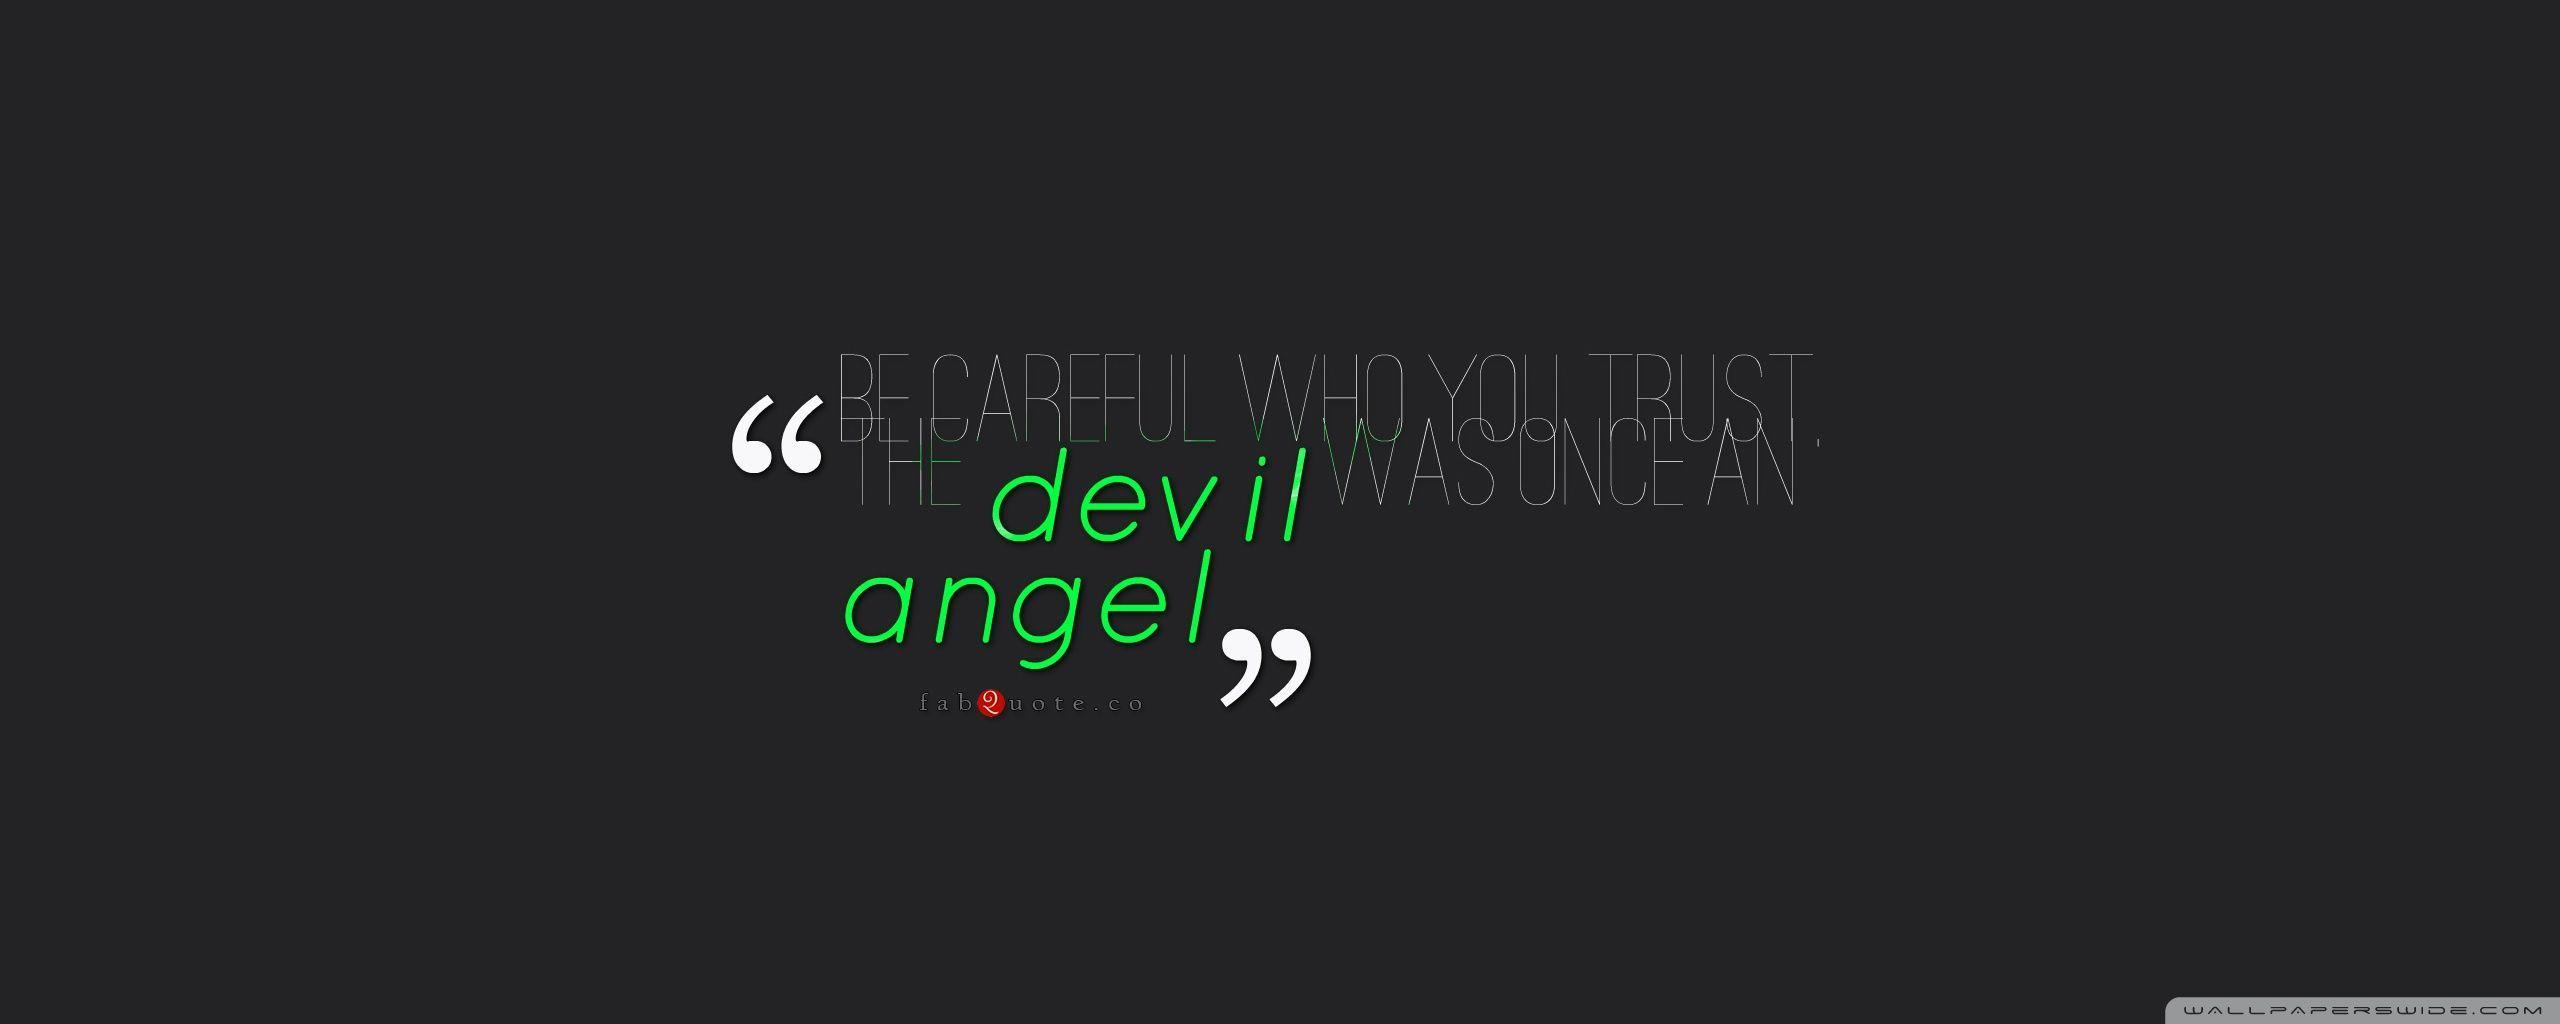 Be Careful Who You Trust Quote HD desktop wallpapers : Widescreen